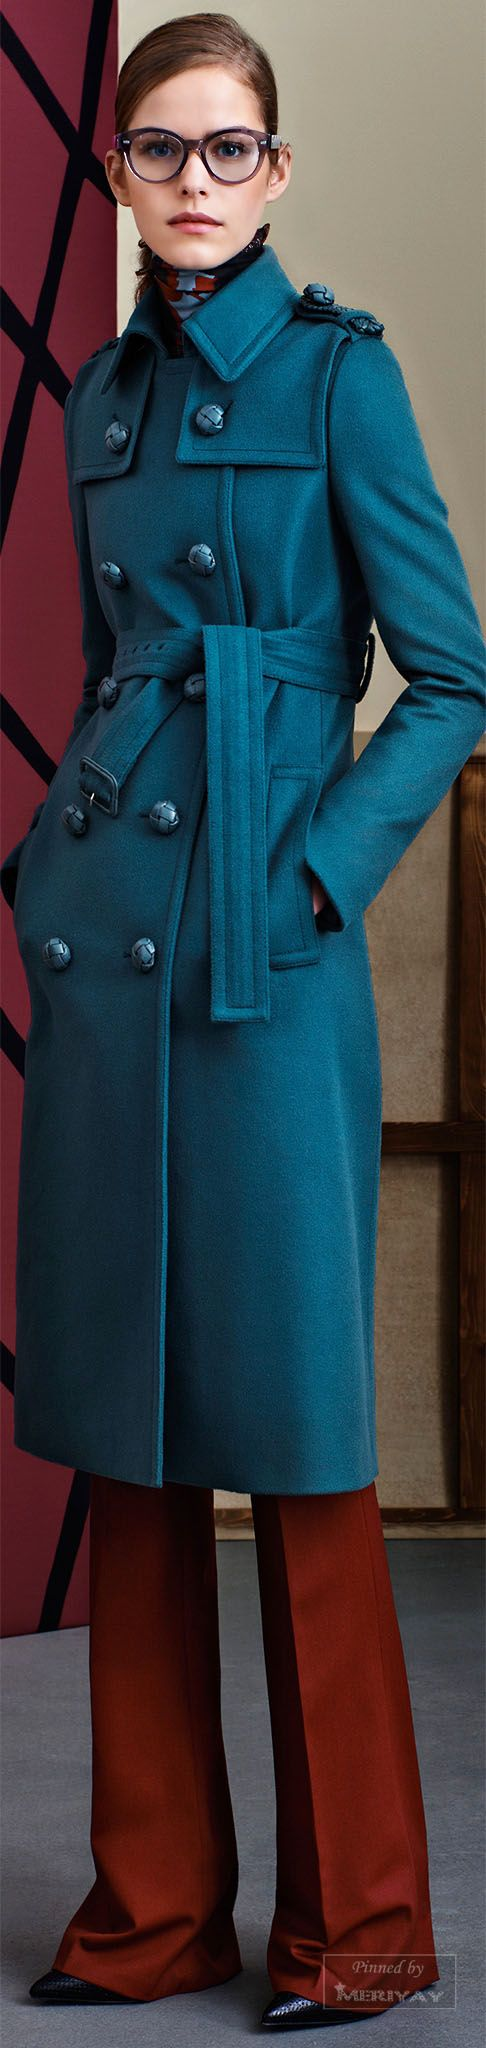 best women coats images on pinterest coat coats and jackets